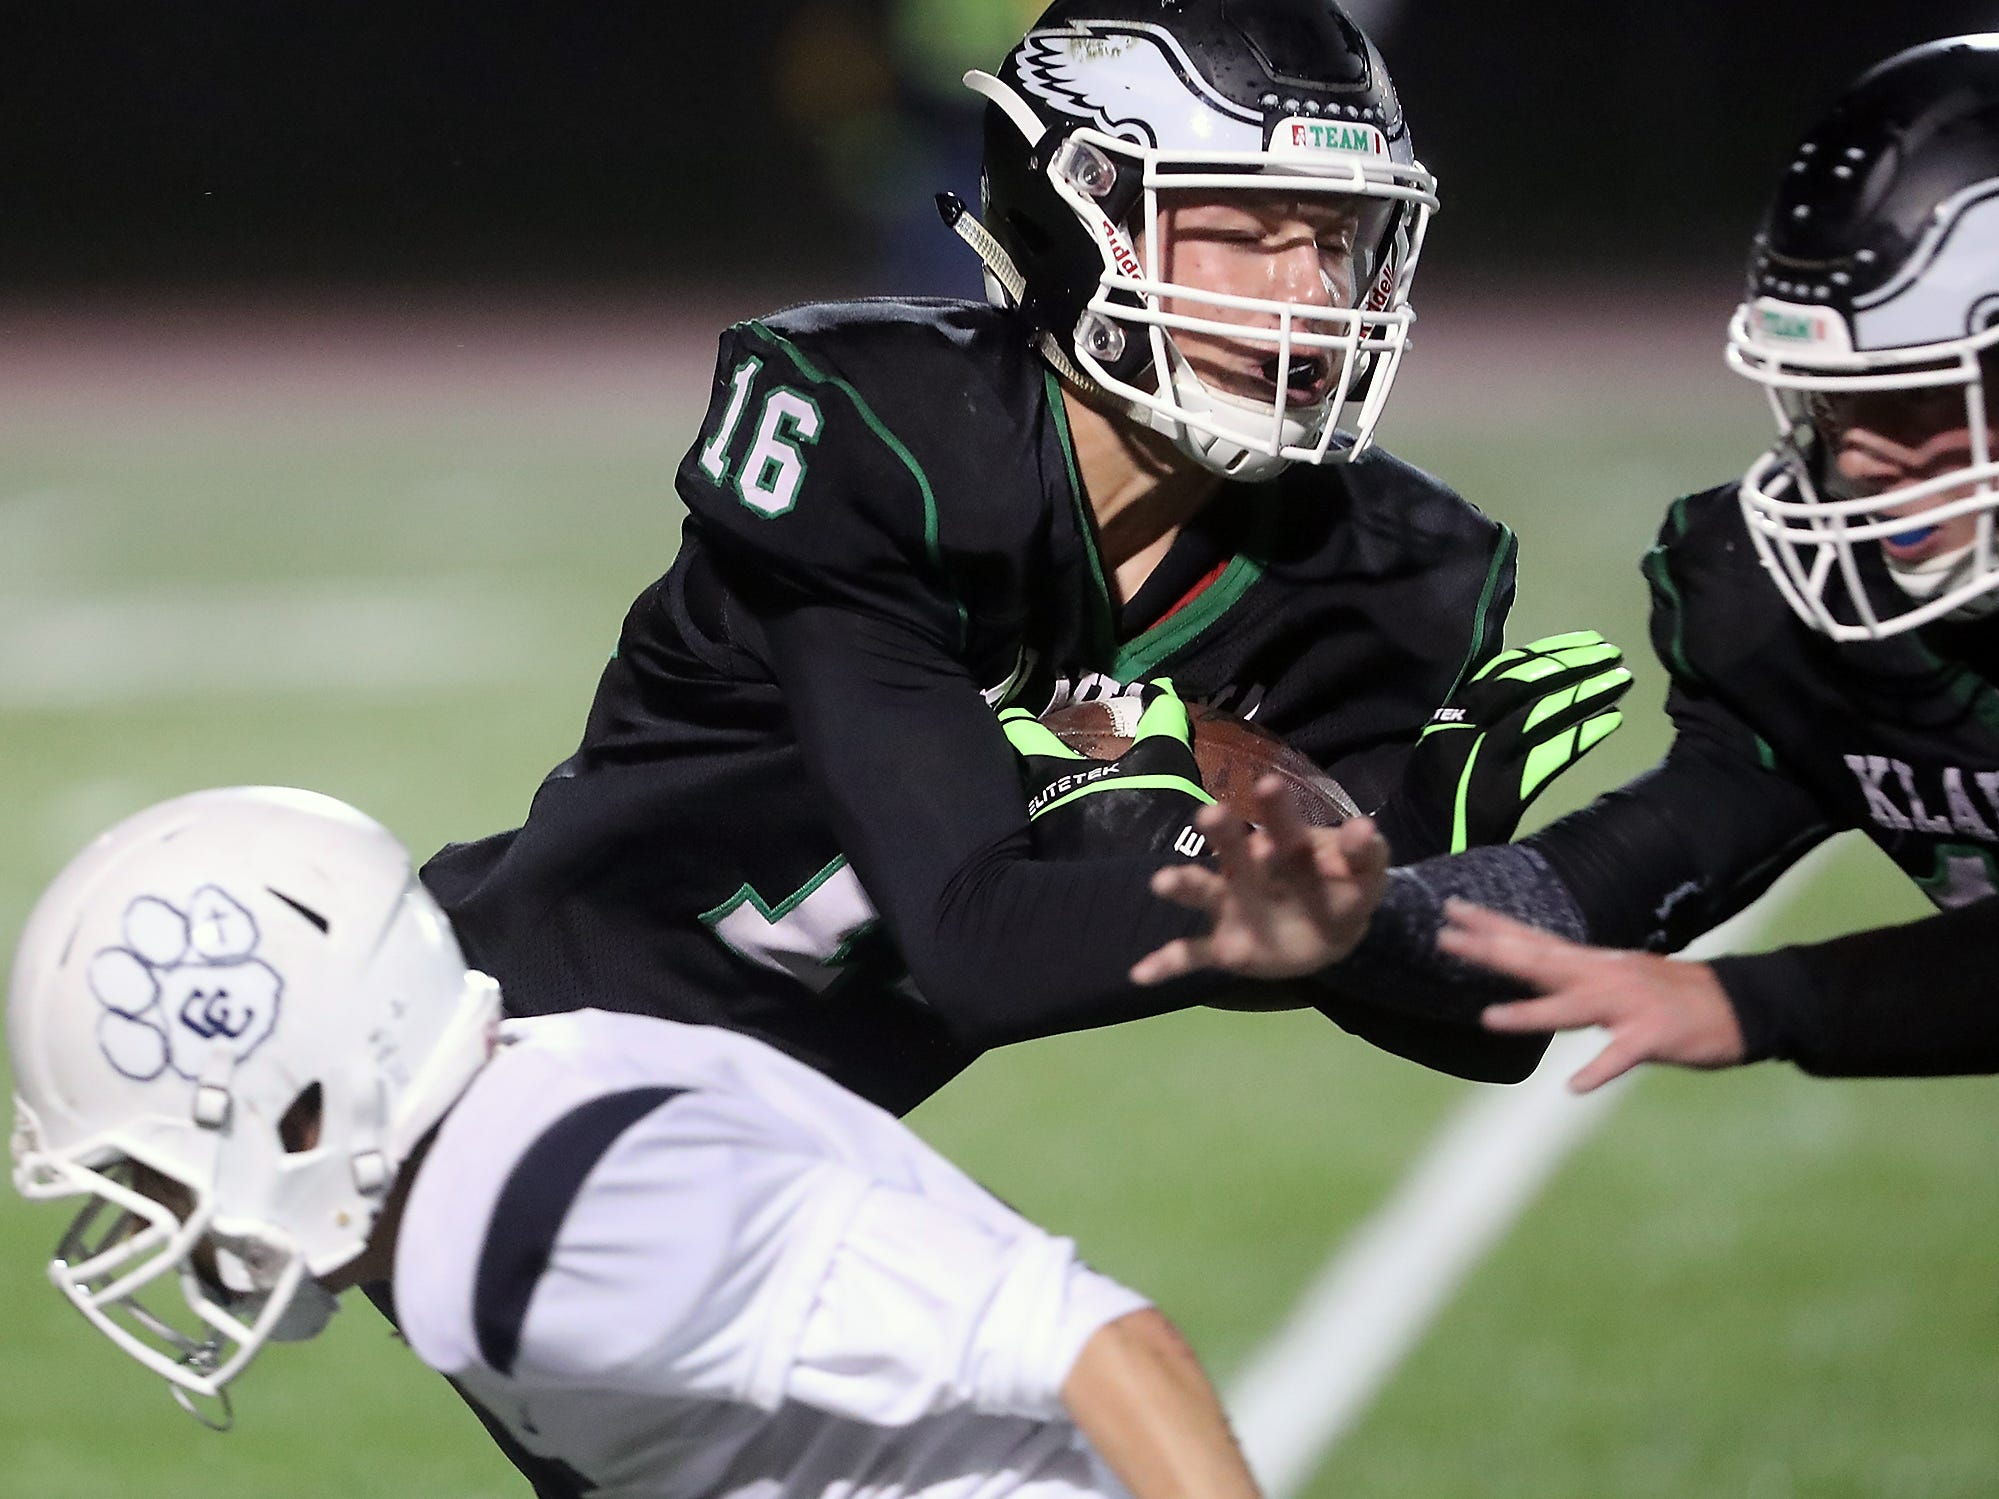 Klahowya's Andrew Dickson (center) carries the ball as teammate Hunter Wallis (right) makes a grab for Cascade Christian's Quinn Greiner (left) during the second half of their game at Silverdale Stadium on Thursday, October 25, 2018. Dickson ran the ball into the end zone for a touchdown on the play.